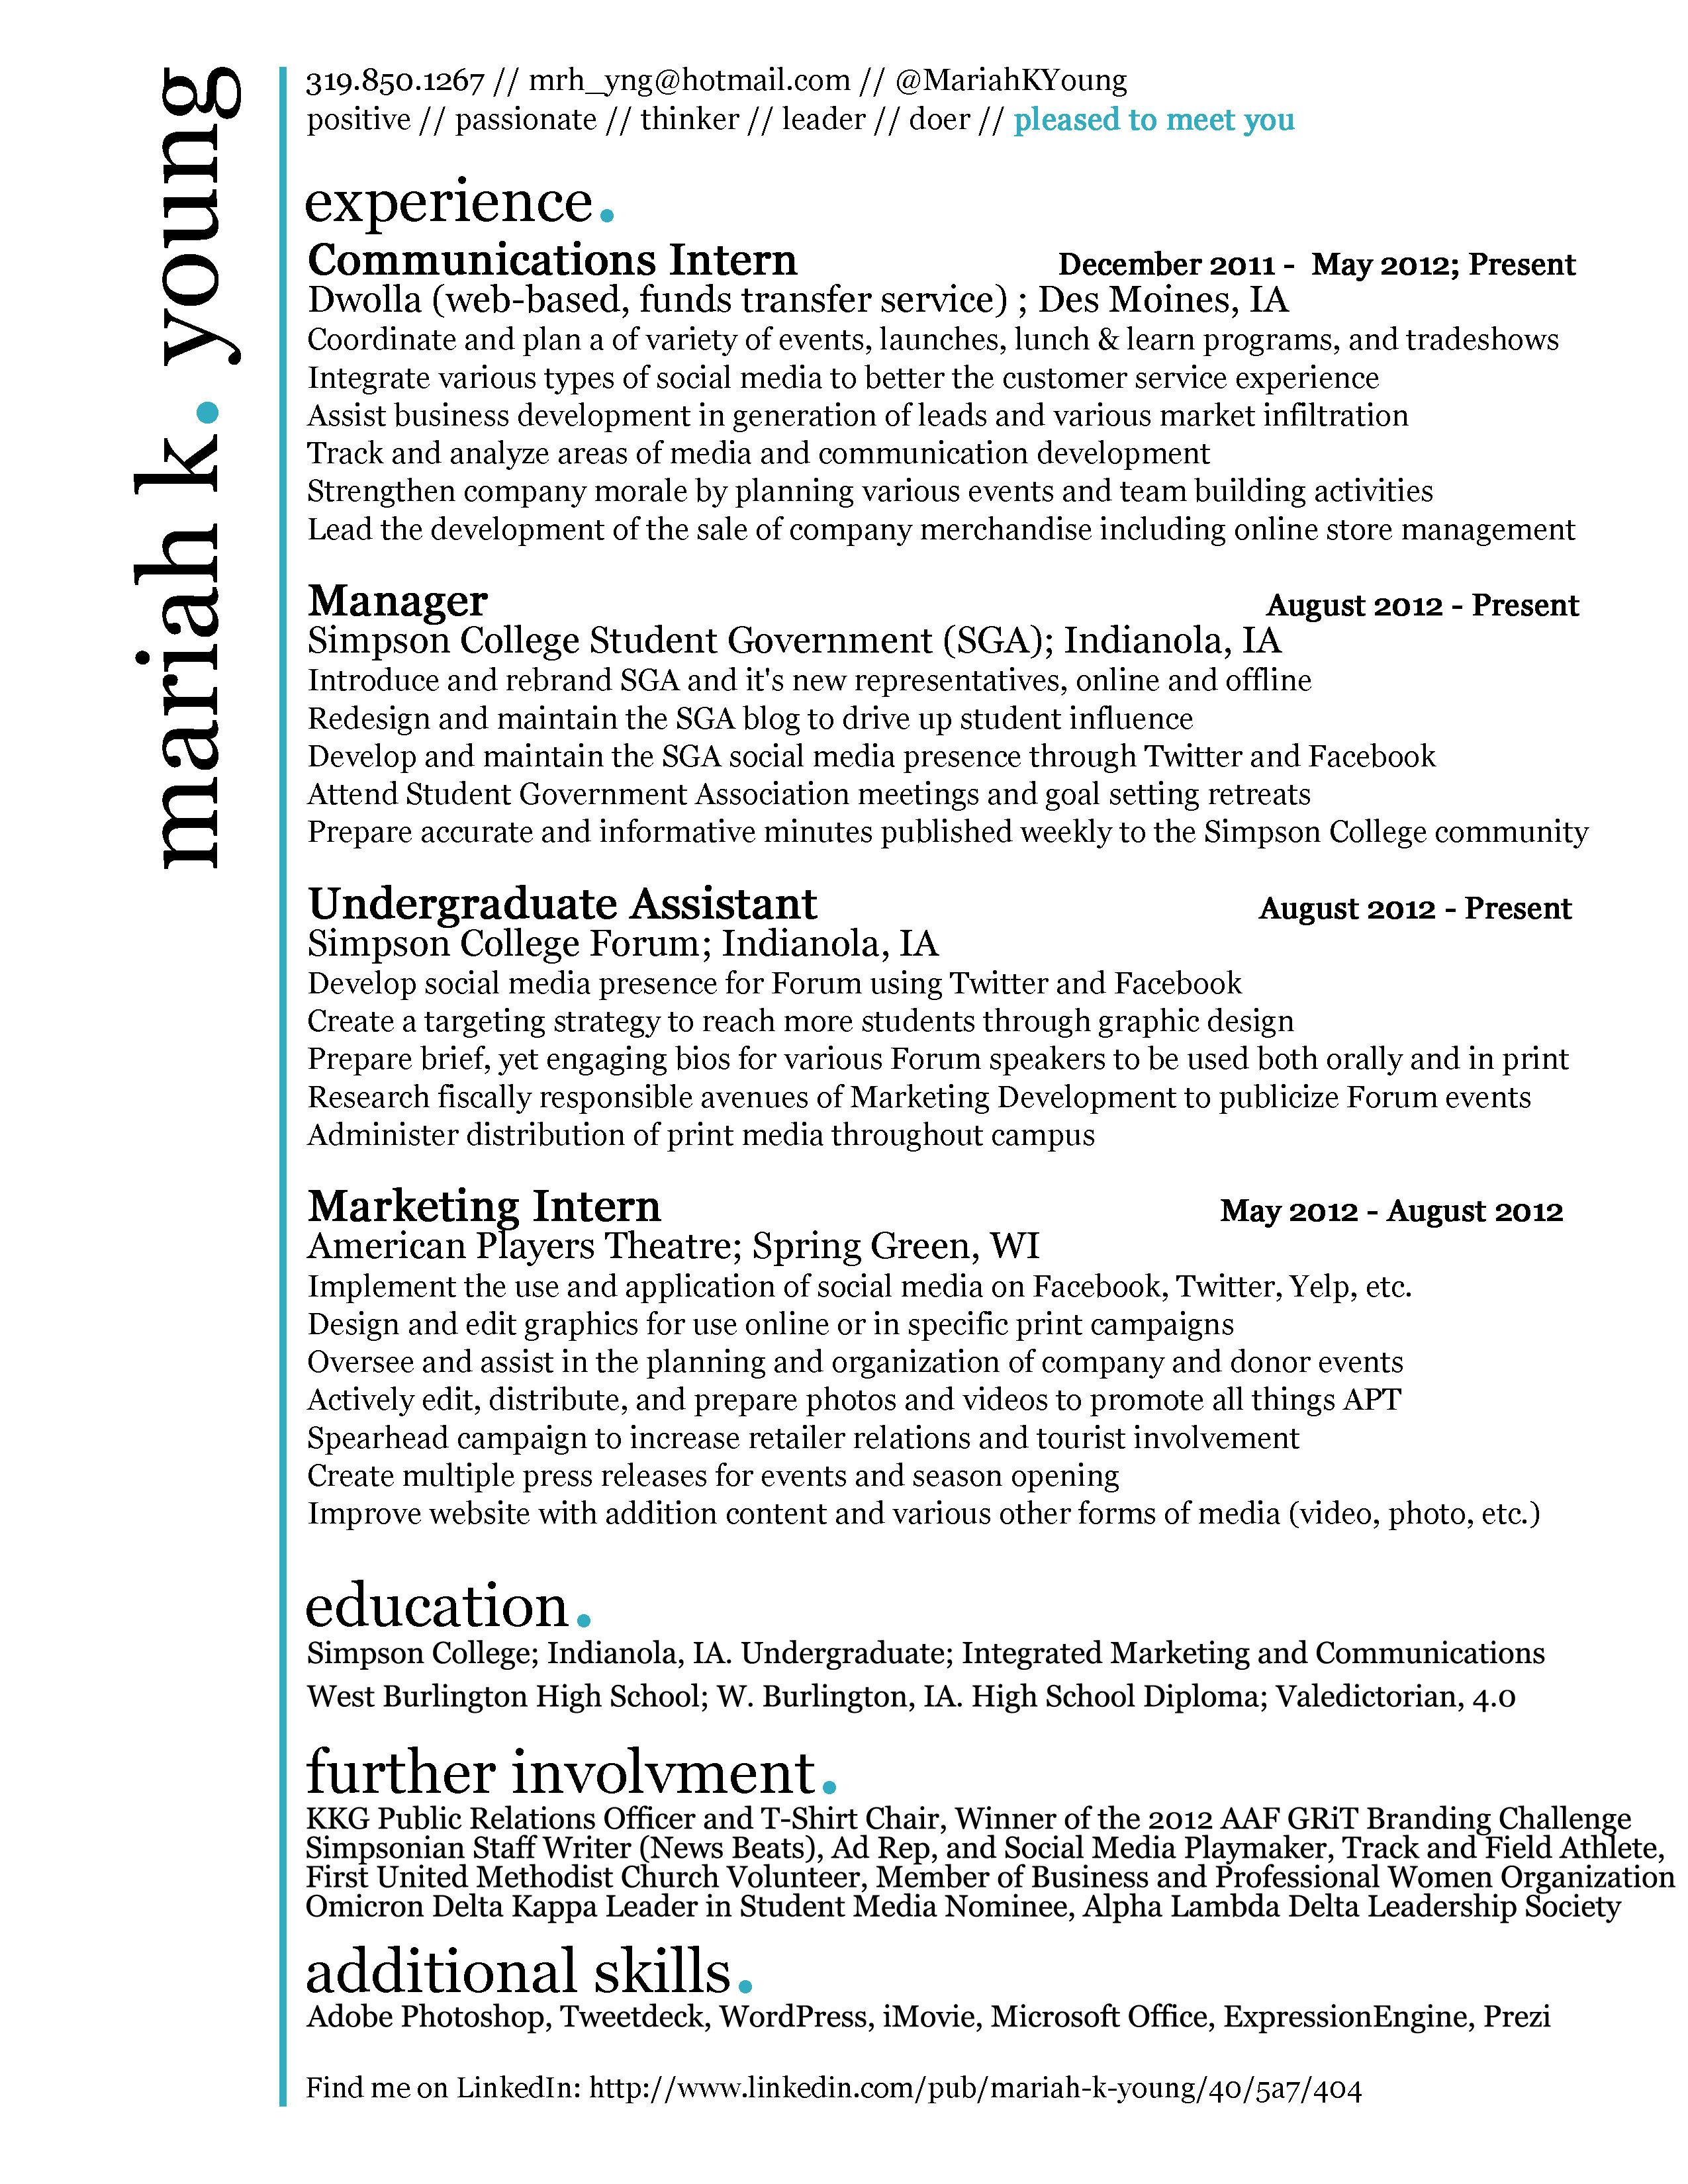 Simple Yet Unique Enough To Catch The Eye Online Resume Job Inspiration Resume Tips